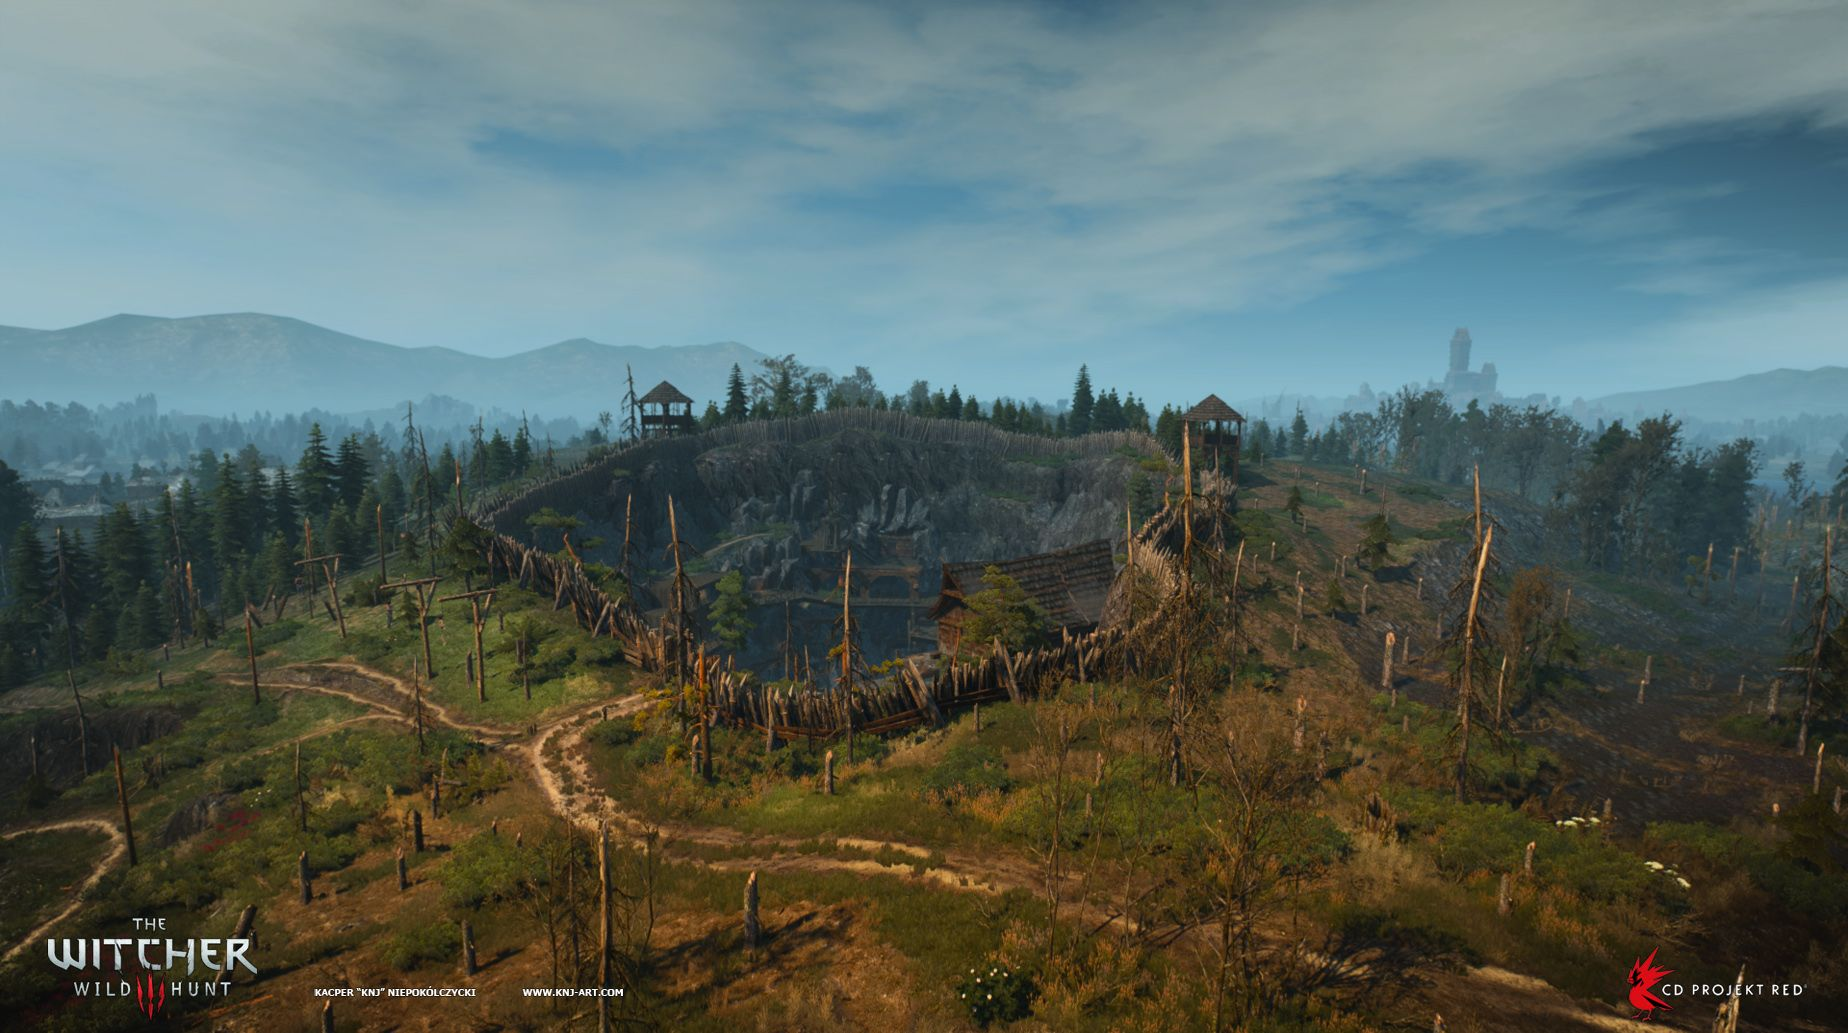 Pin By Jon Moss On Environment The Witcher Environment Design The Witcher 3